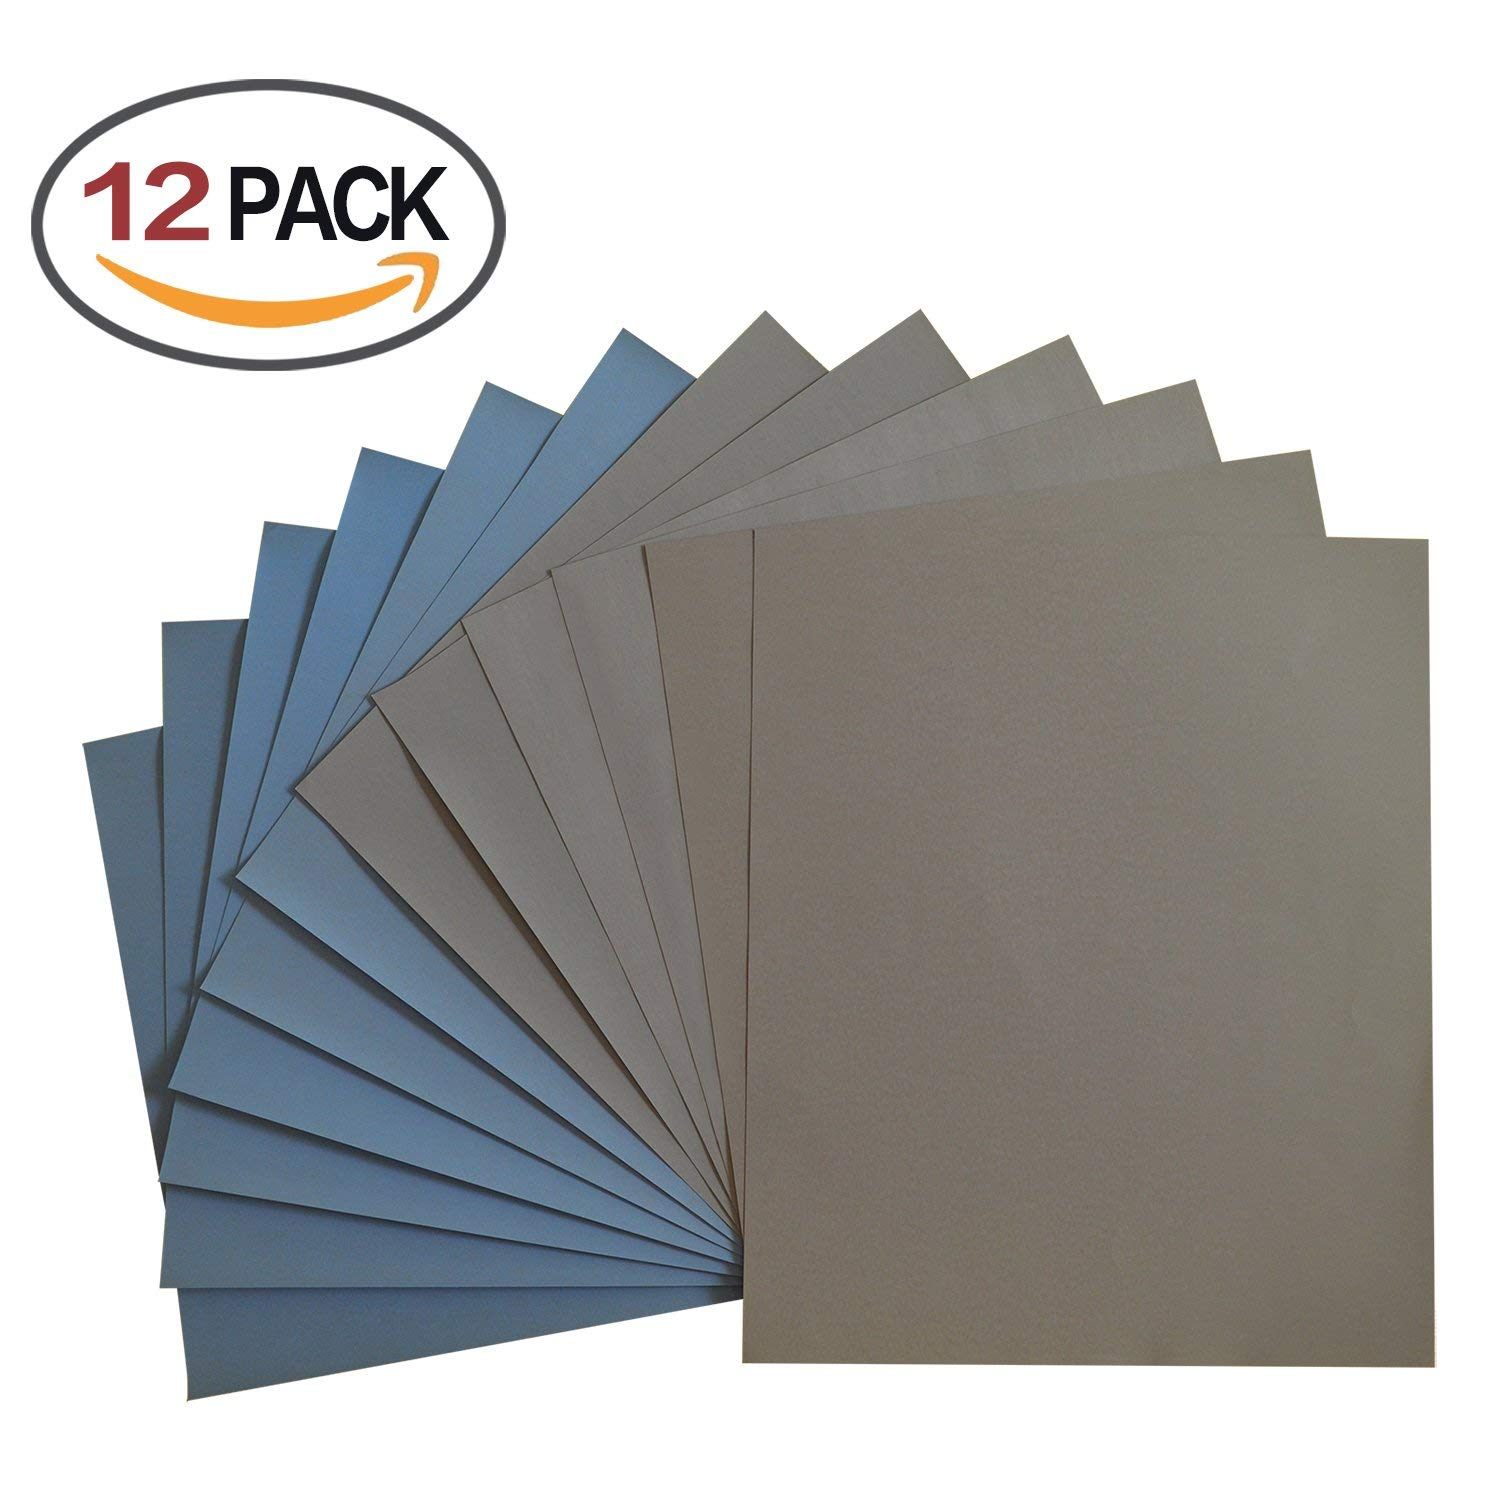 THGS Grit 1500 2000 2500 3000 5000 7000 High Precision Polishing Sanding Wet/dry Abrasive Sandpaper Sheets - Germany, Pack of THGS Grit 1500 2000 2500 3000 5000 7000 High Precision Polishing Sanding Wet/dry Abrasive Sandpaper Sheets - Germany, Pack of